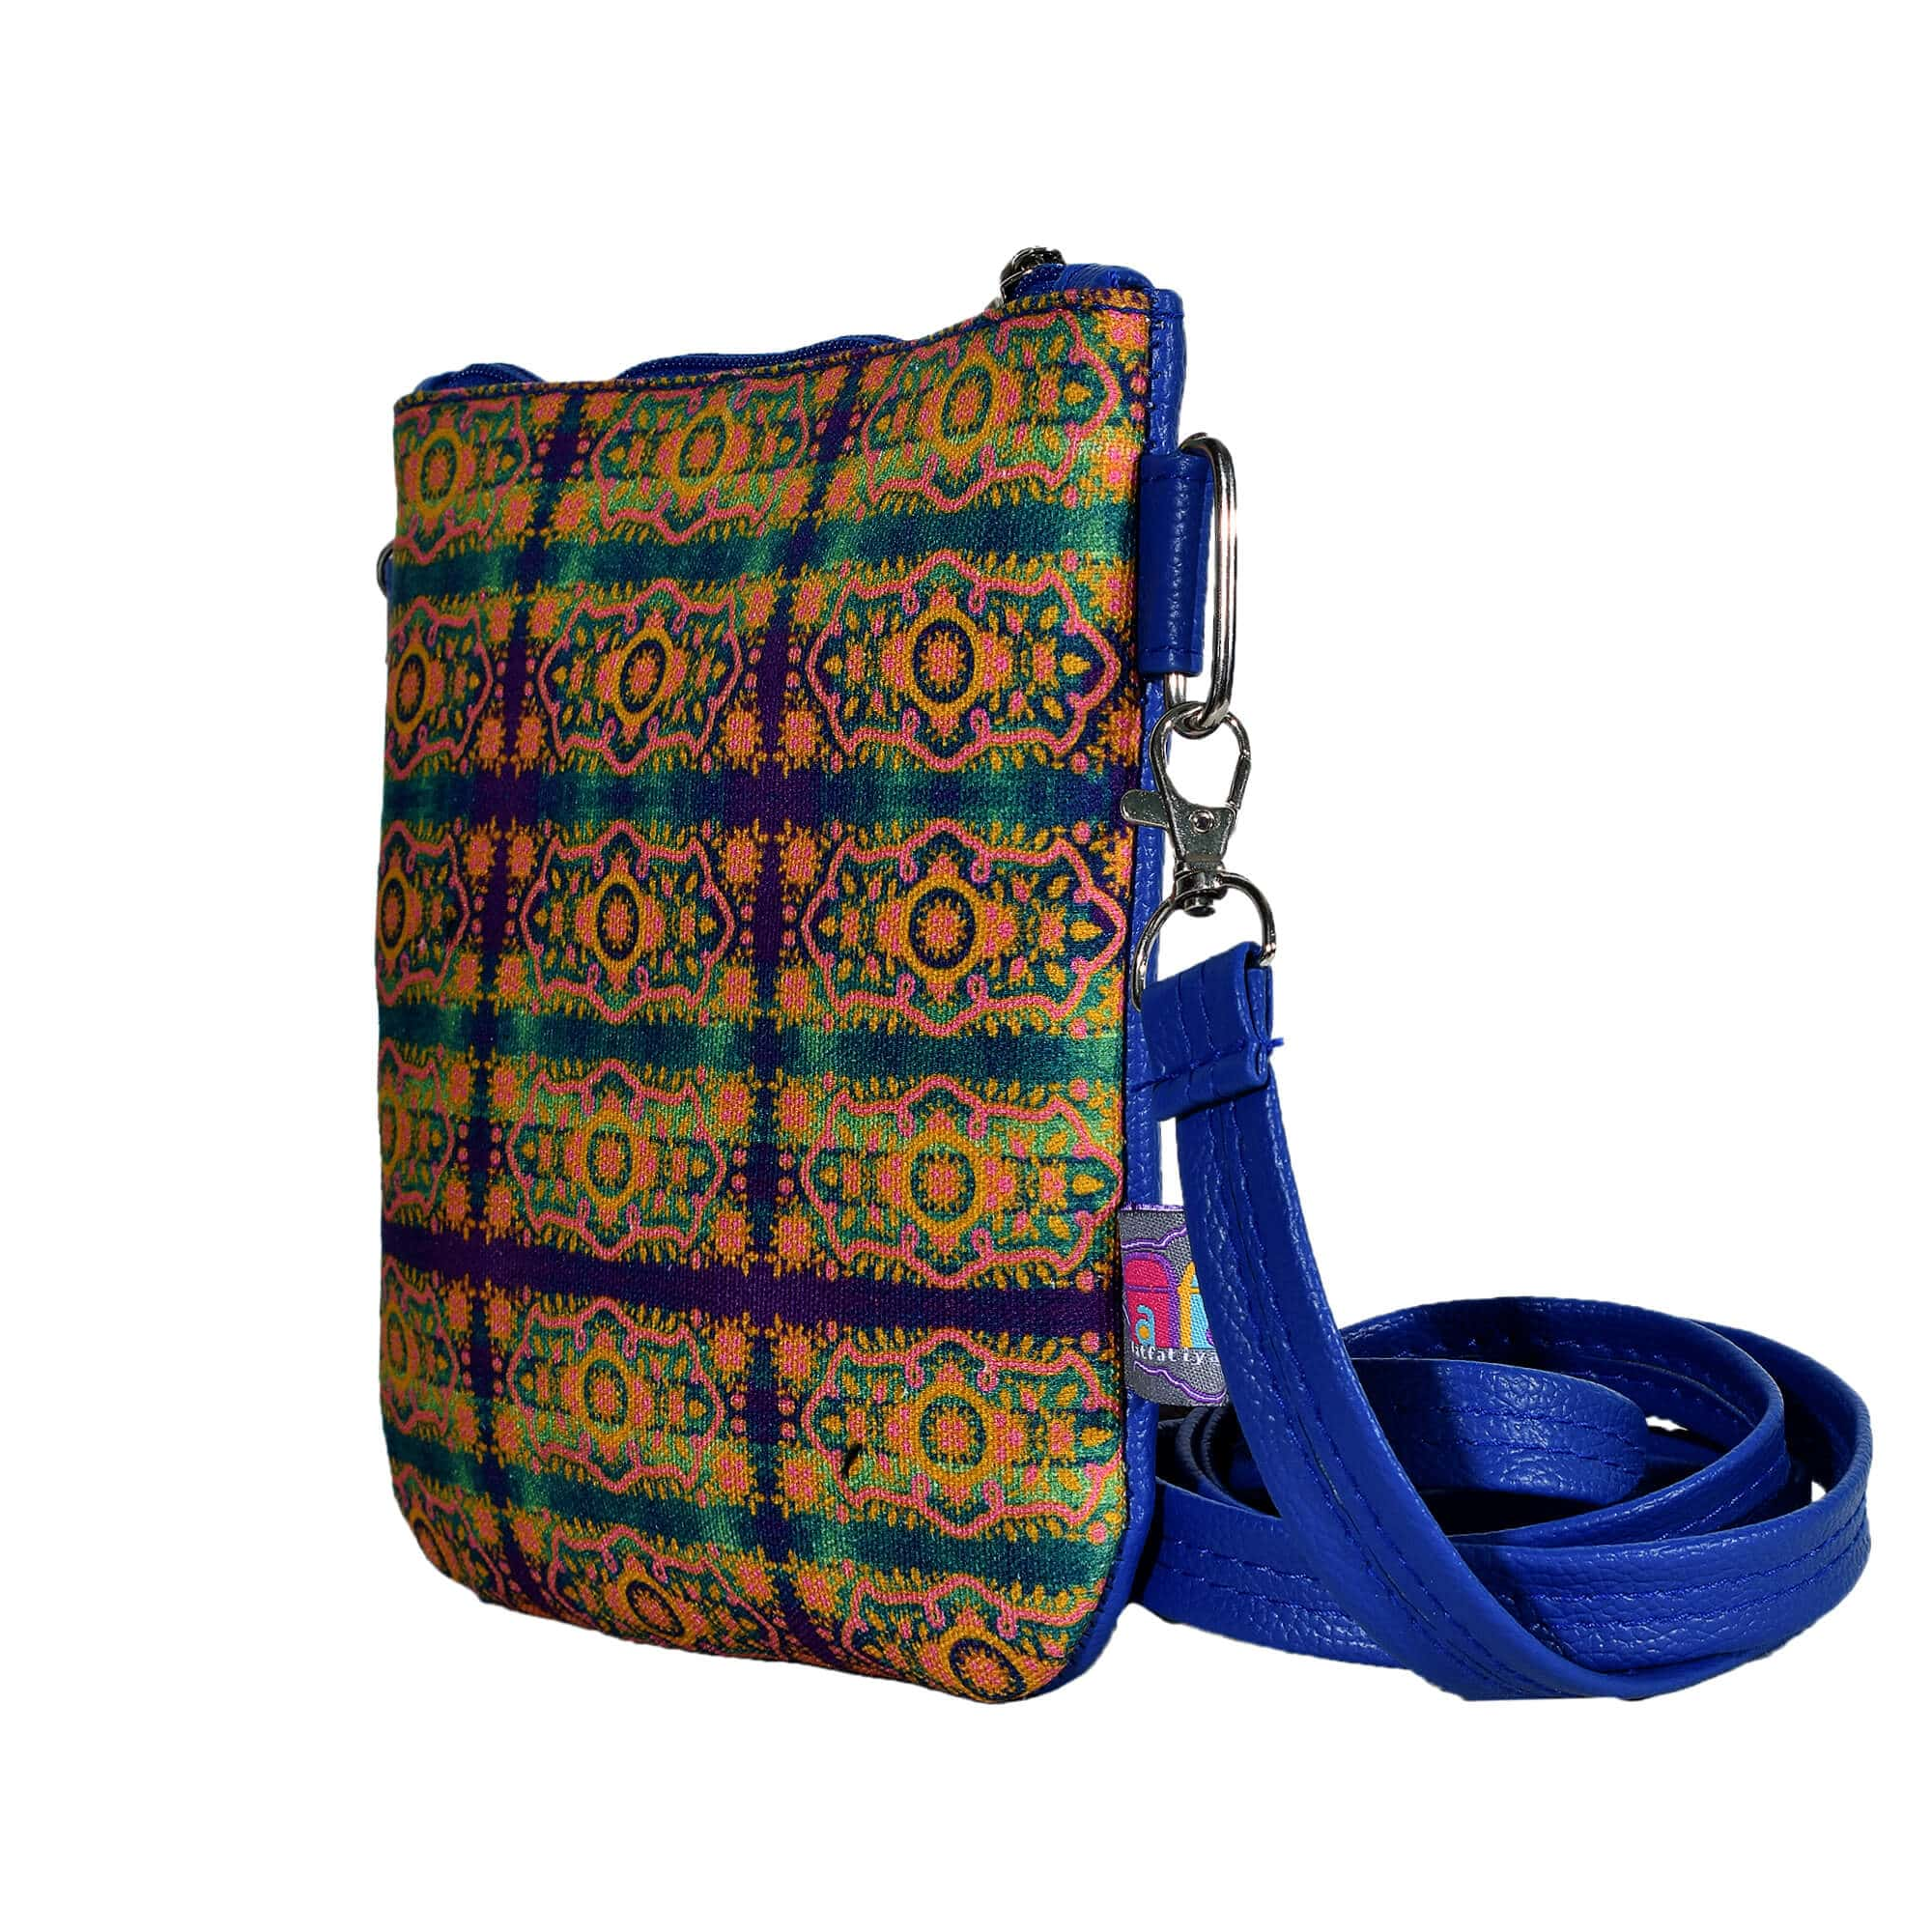 Small Sling Bag Fdtsb028 Other 2